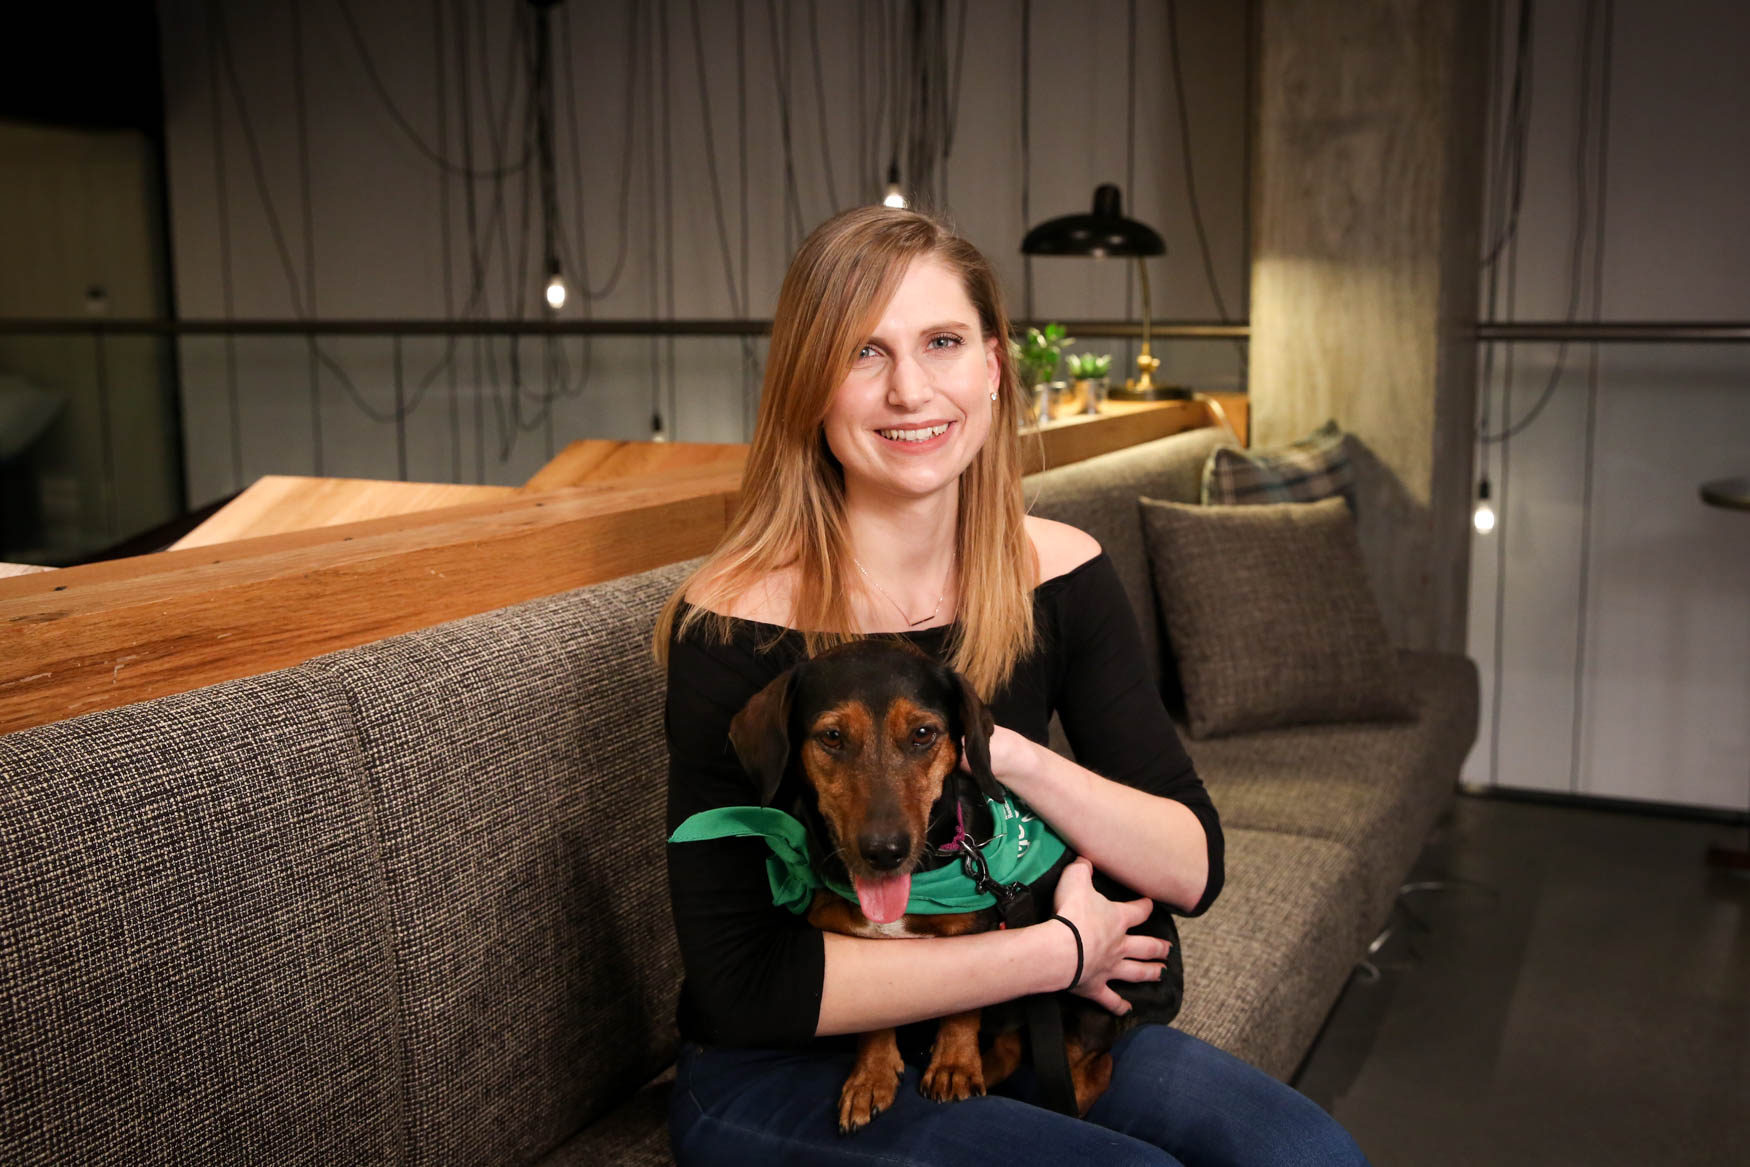 Sam is originally from Virginia Beach and currently works for a nonprofit. She plays viola in a community orchestra and is an avid reader. Sam would like to add yoga to her hobby list, and bonus points if puppies are involved. Learn more about Sam on our Facebook page. Photo location: Moxy Washington, D.C. Downtown (Image: Amanda Andrade-Rhoades/ DC Refined)